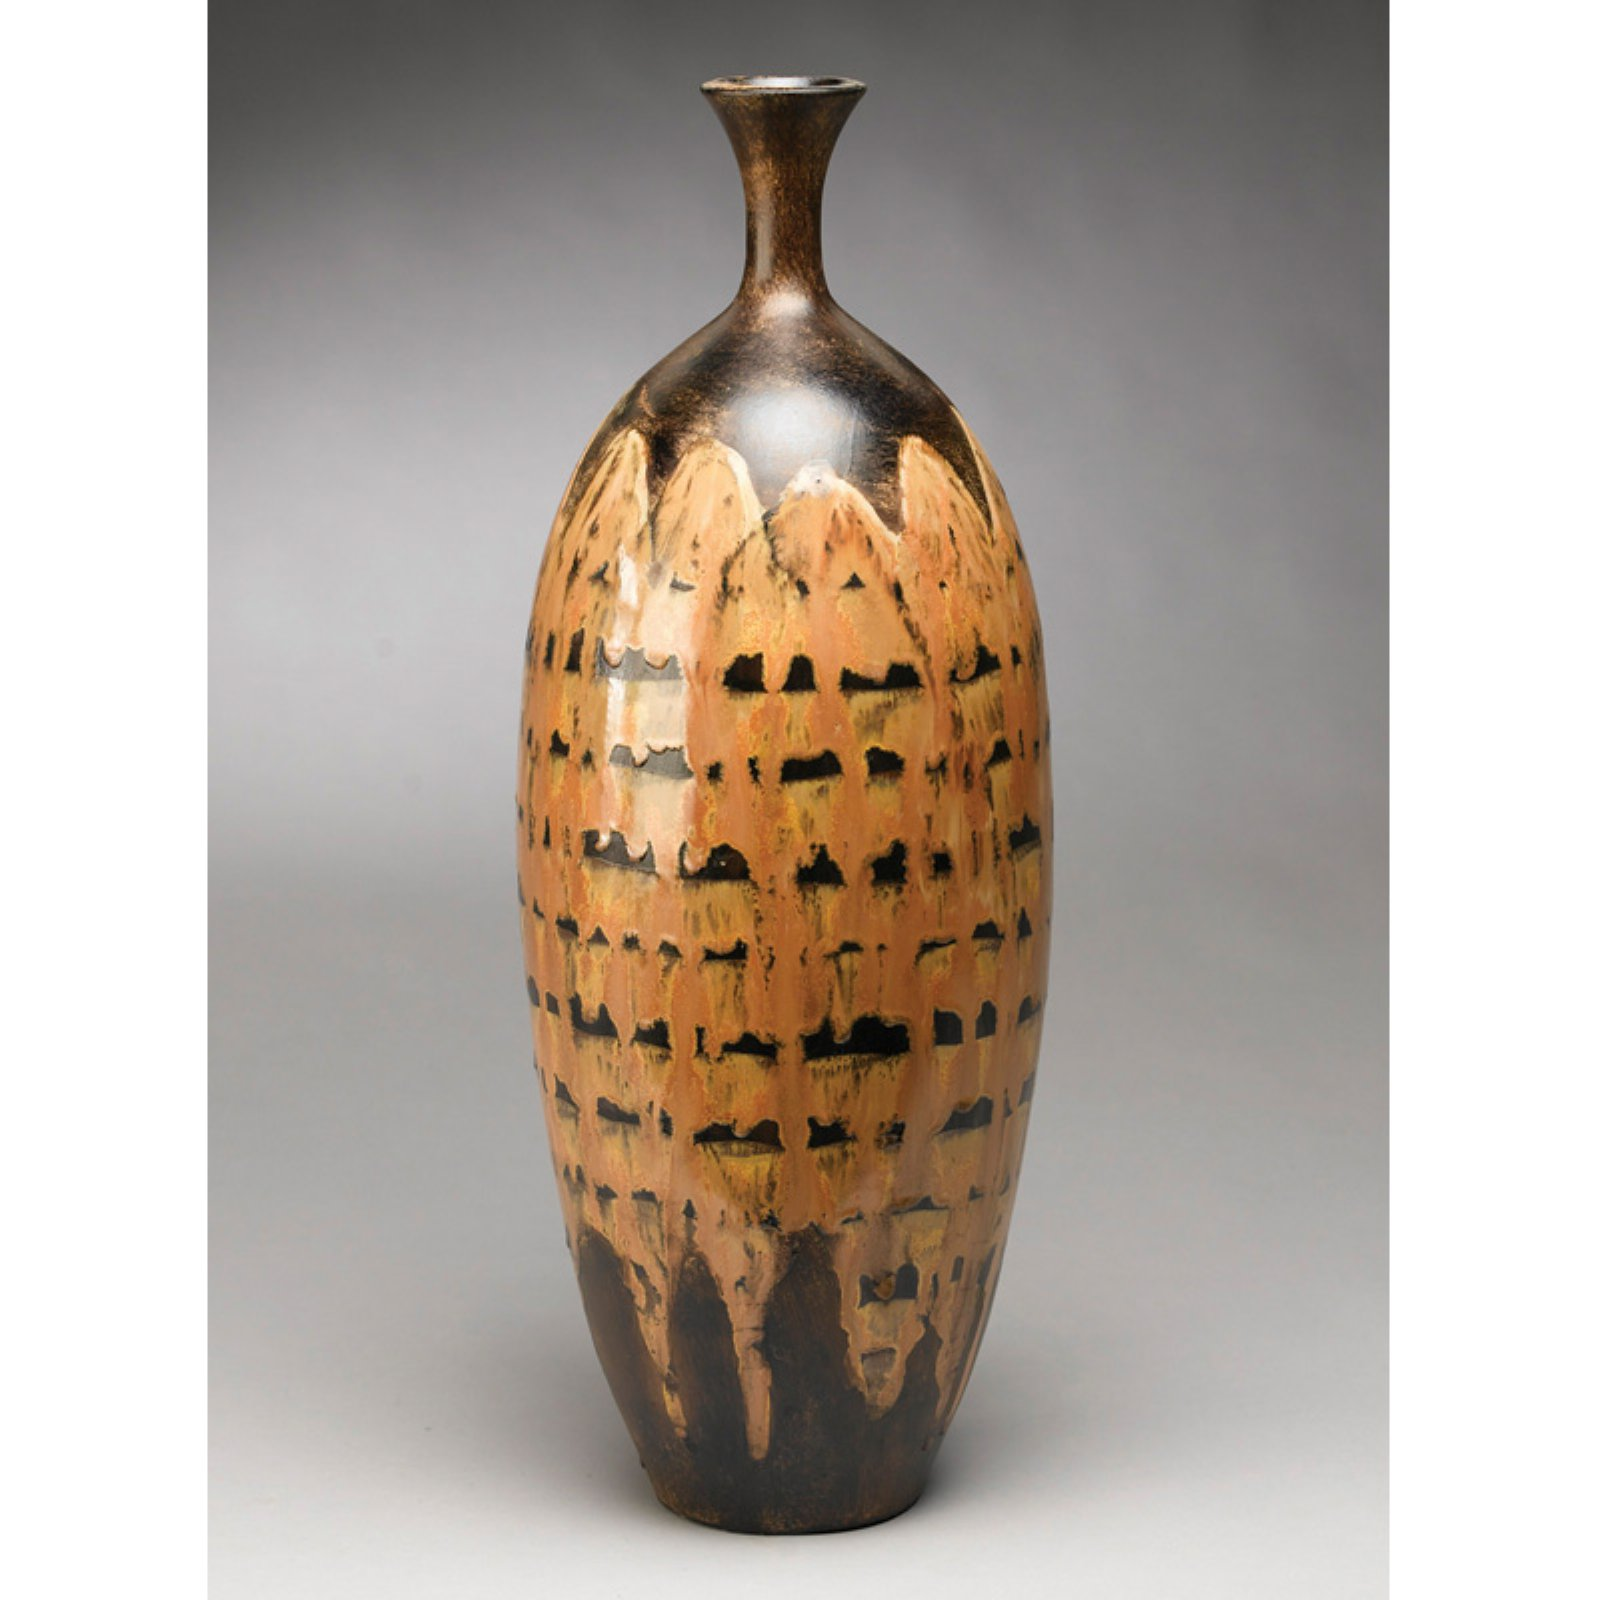 AA Importing 25 in. Hand Painted Table Vase by AA Importing